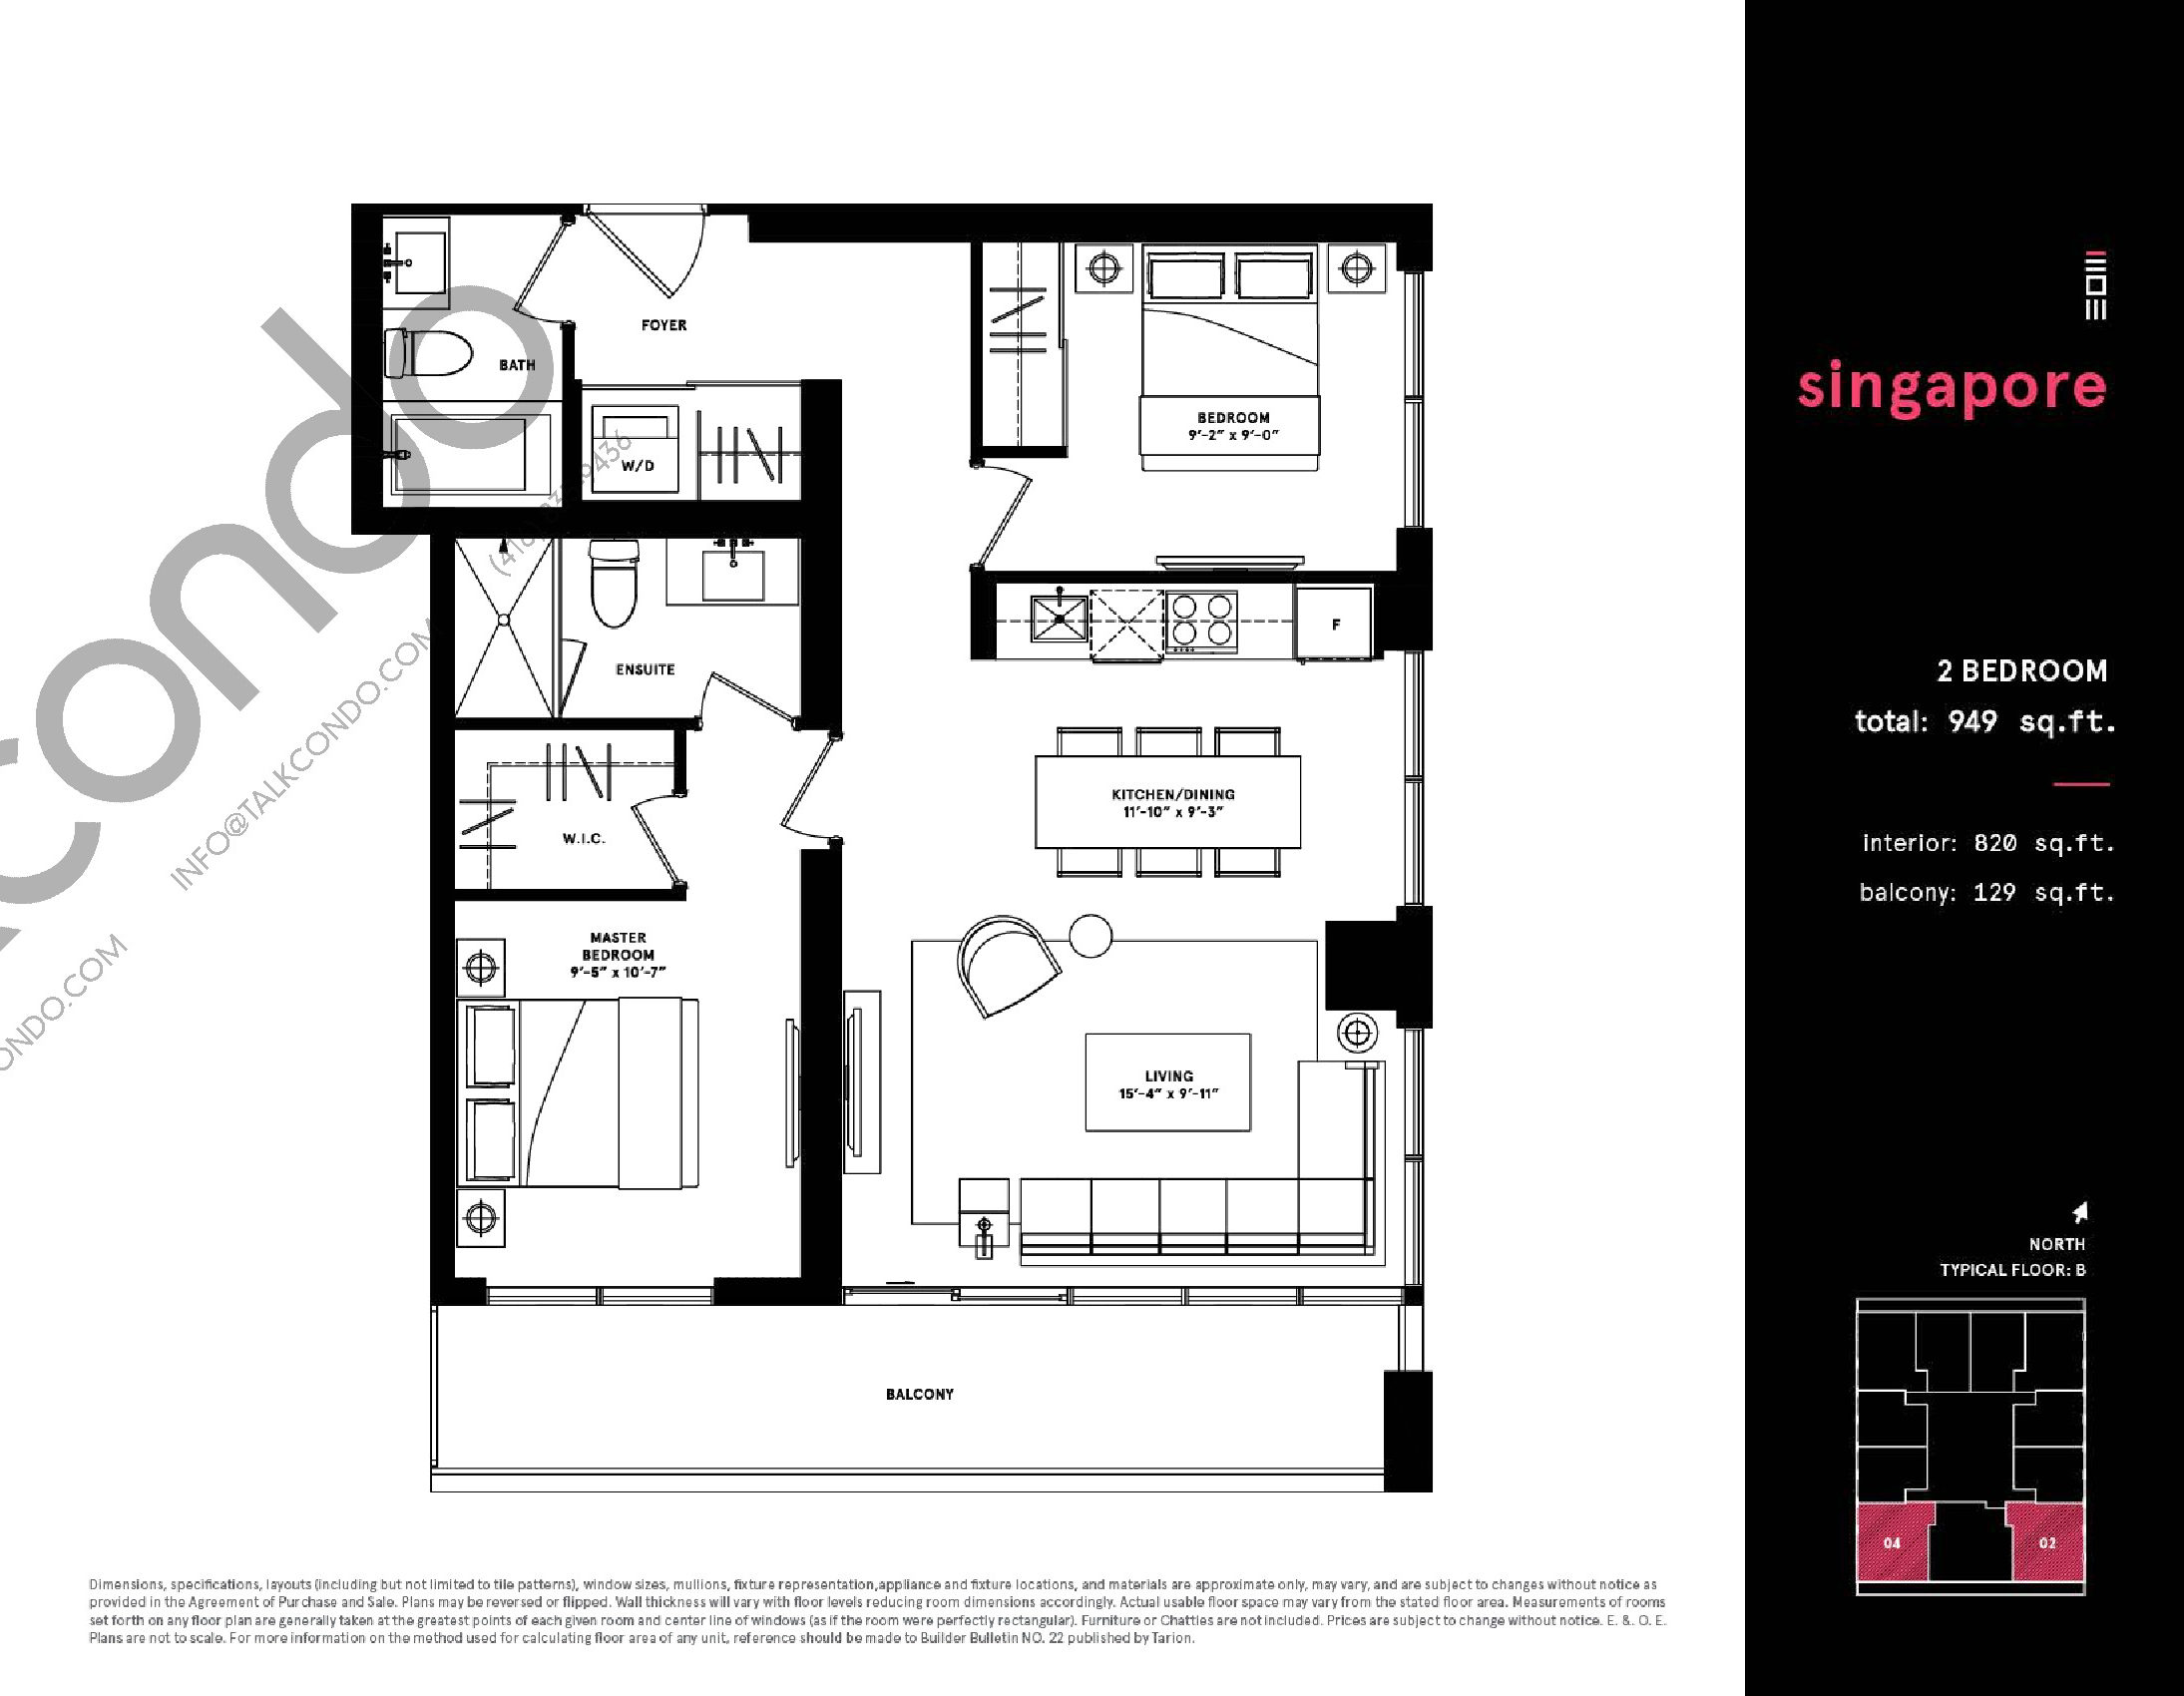 Singapore Floor Plan at Exchange District Condos - 820 sq.ft